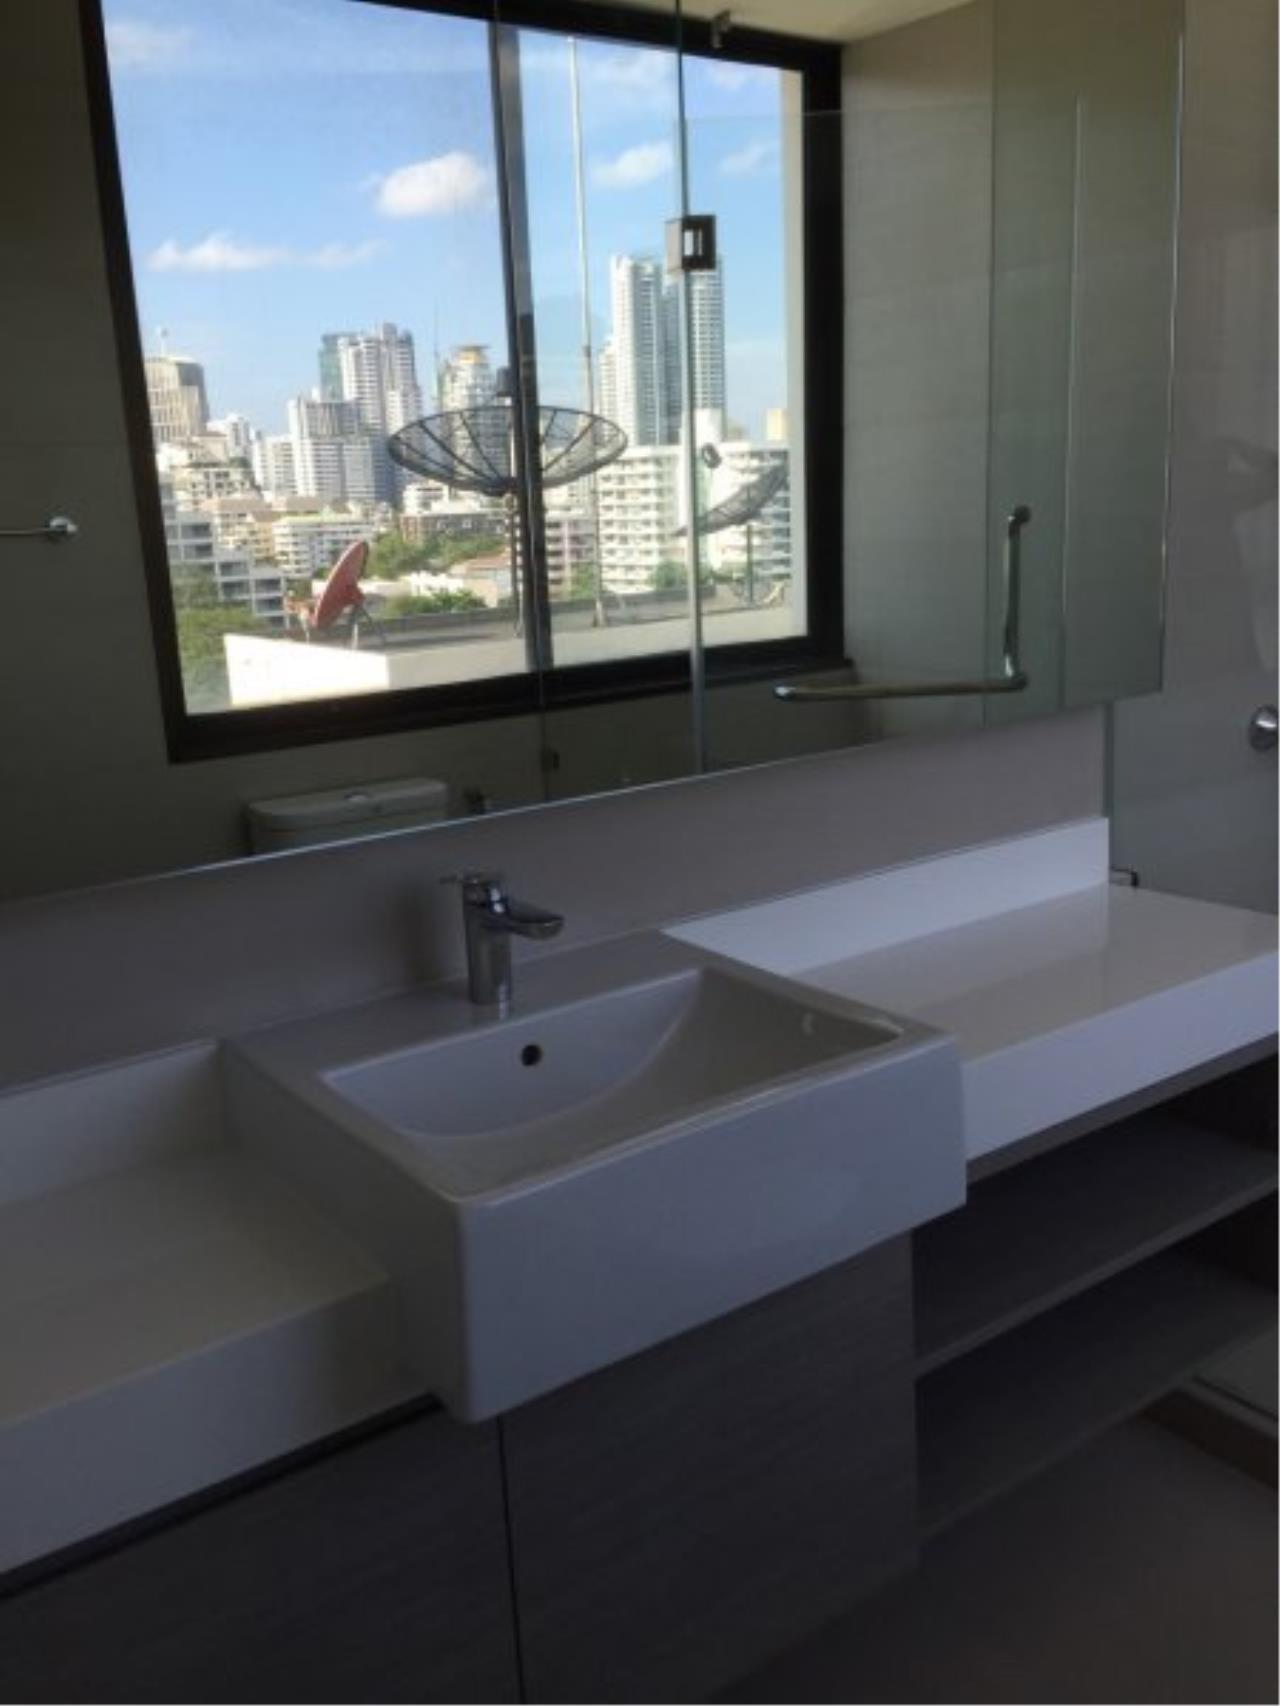 Piri Property Agency's Huge 3 Bedrooms in the Prime Mansion Condo for sale on high floor 14